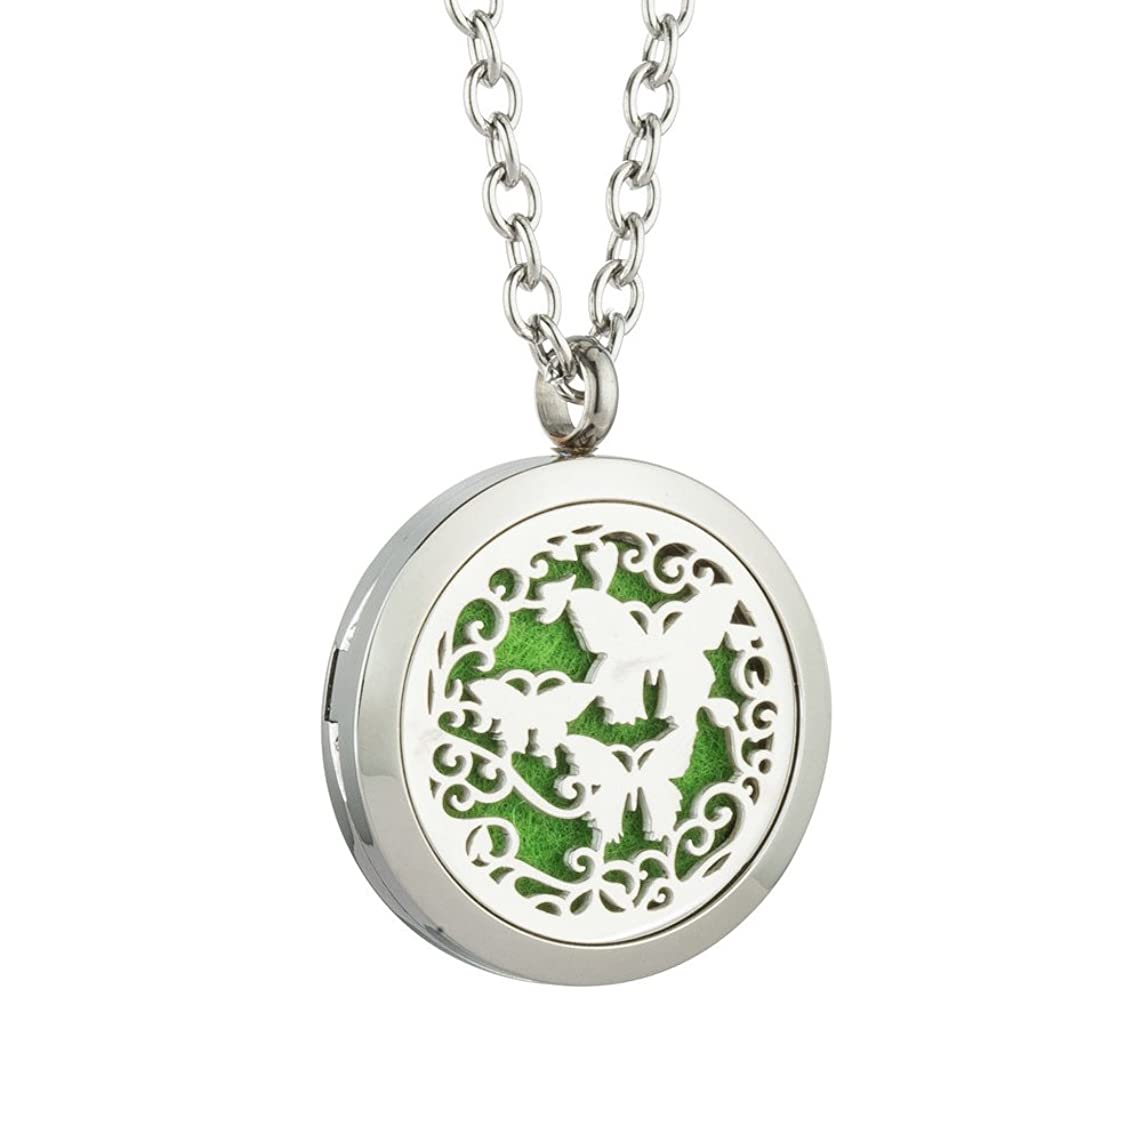 JAOYU Essential Oil Diffuser Necklace for Women Men Aromatherapy Pendant Stainless Steel Floating Charm Locket - Animal Jewelry Teen Girls Gifts